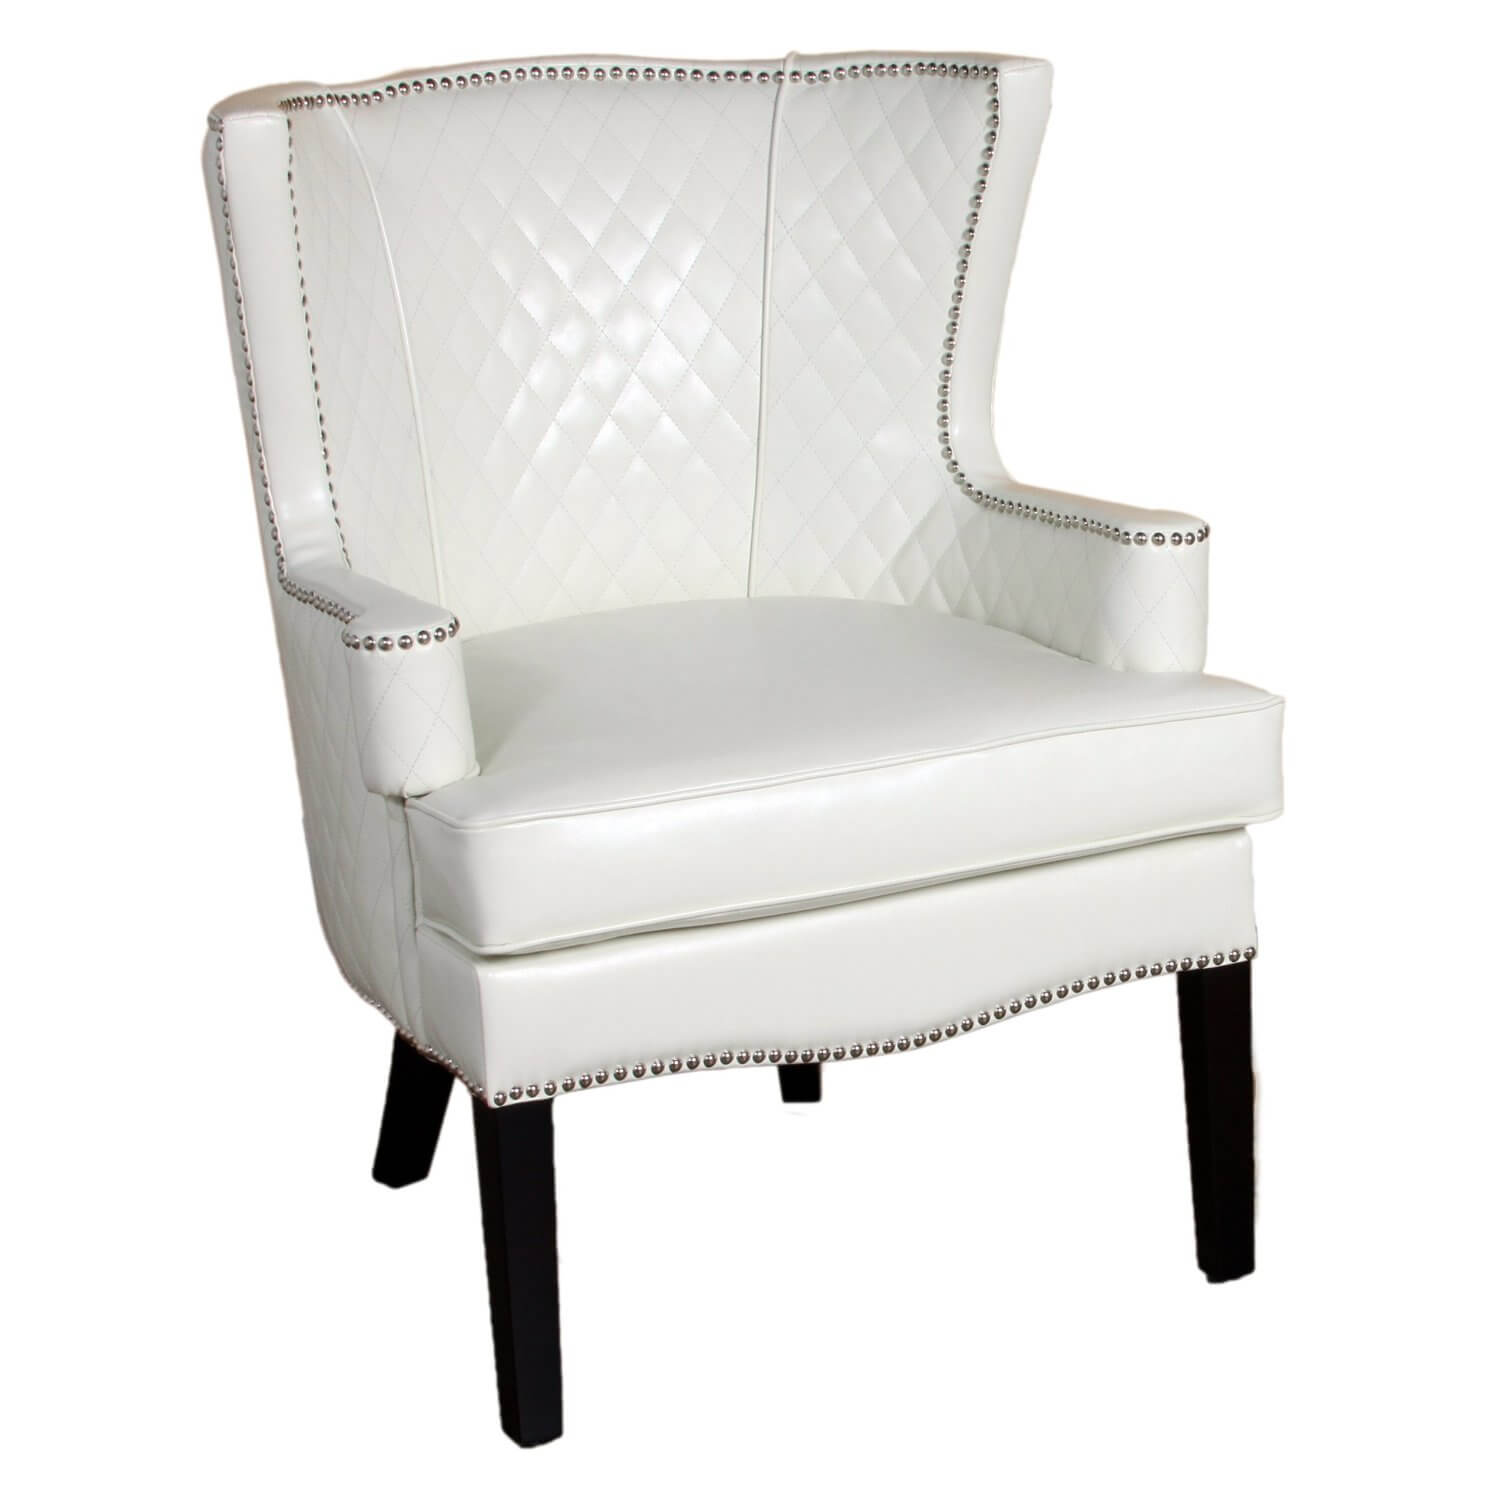 Another Ivory Toned Chair, This Quilted Leather Seat By BEST Features Wide  Seating, With .